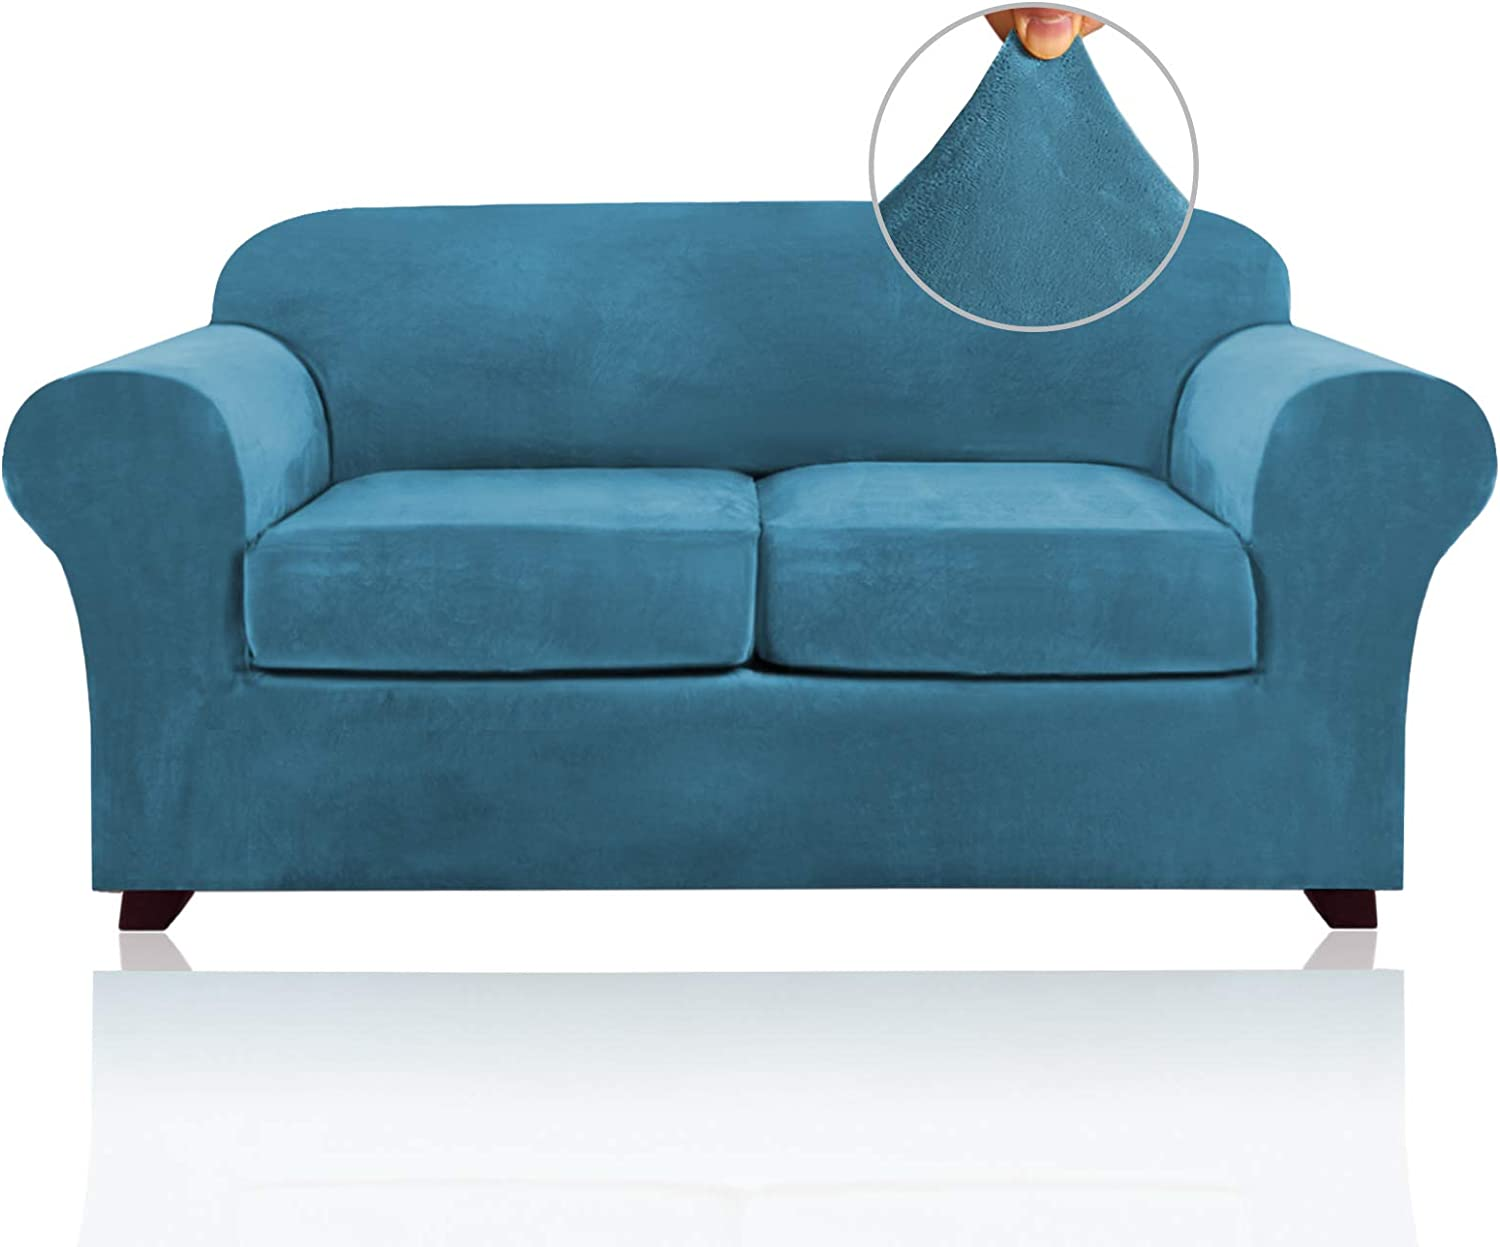 3 Pieces Sofa Covers Stretch Velvet Couch Covers for 2 Cushion Sofa Slipcovers Sofa Slip Covers with 2 Non Slip Straps Furniture Covers with 2 Individual Seat Cushion Covers (Loveseat, Blue)